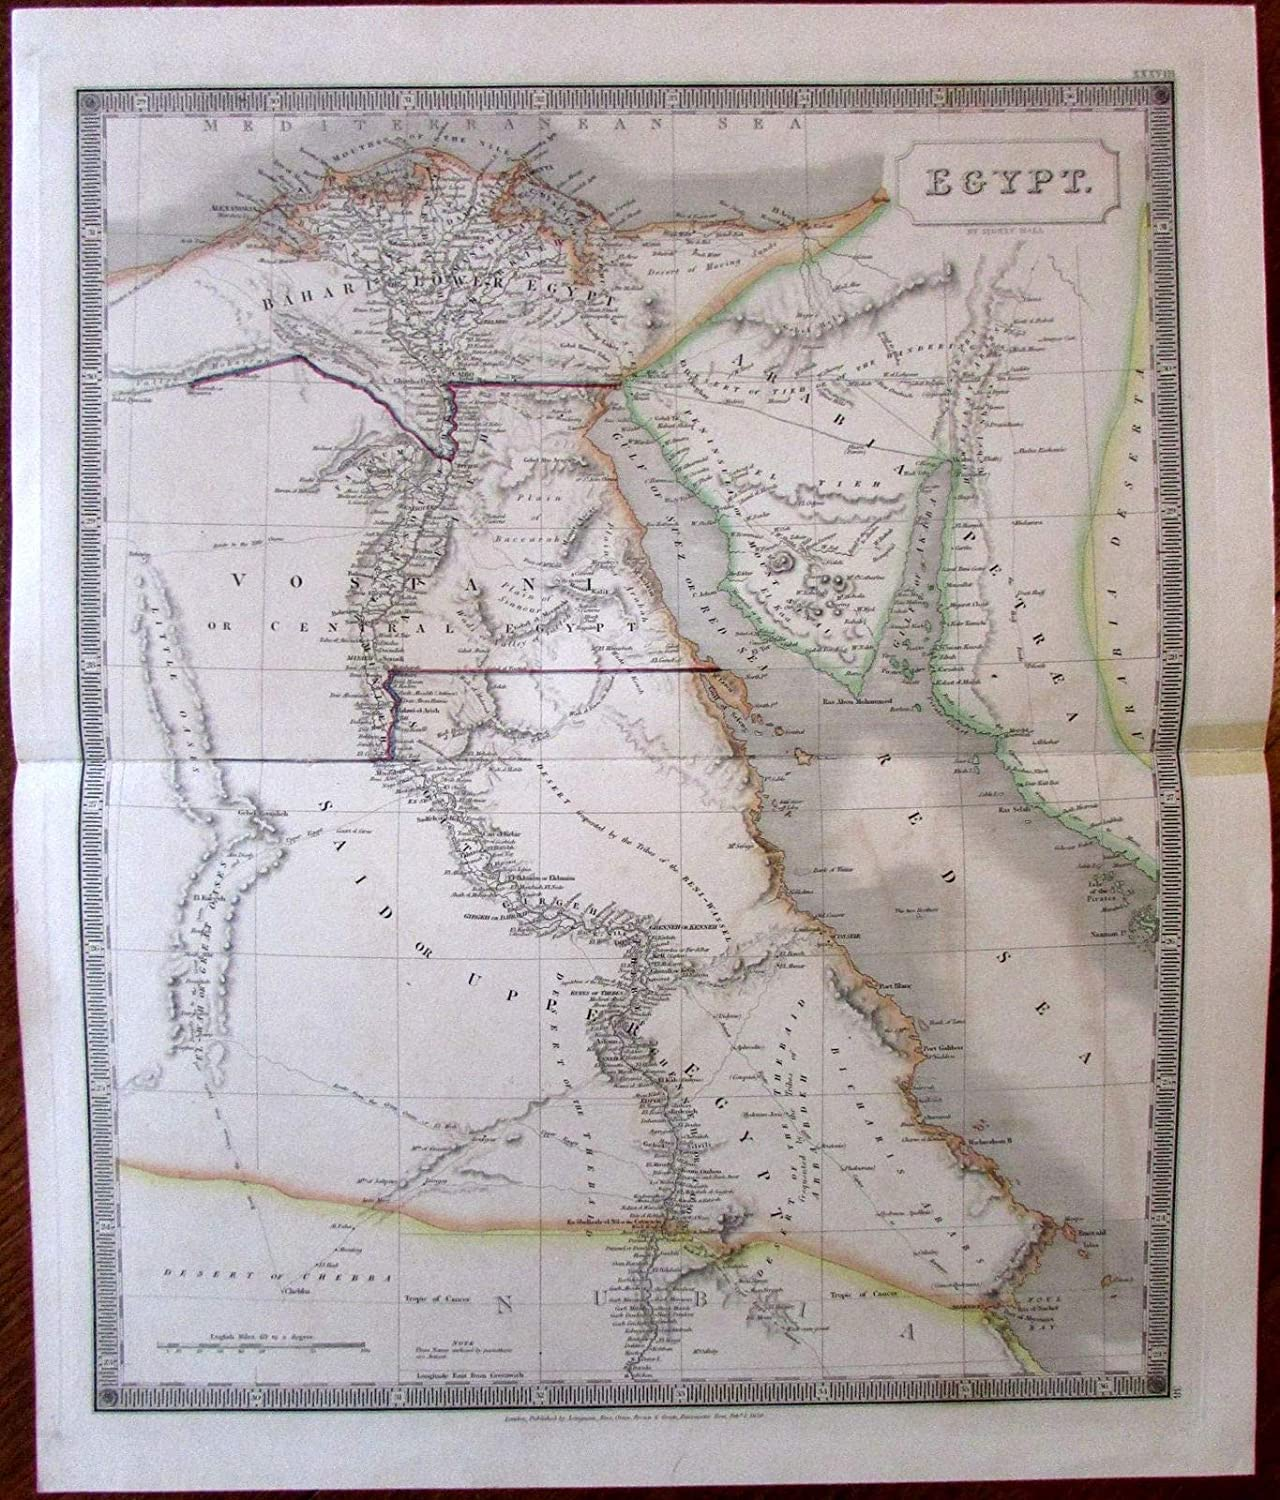 Amazon.com: Egypt Africa c.1829 S. Hall large engraved hand ...